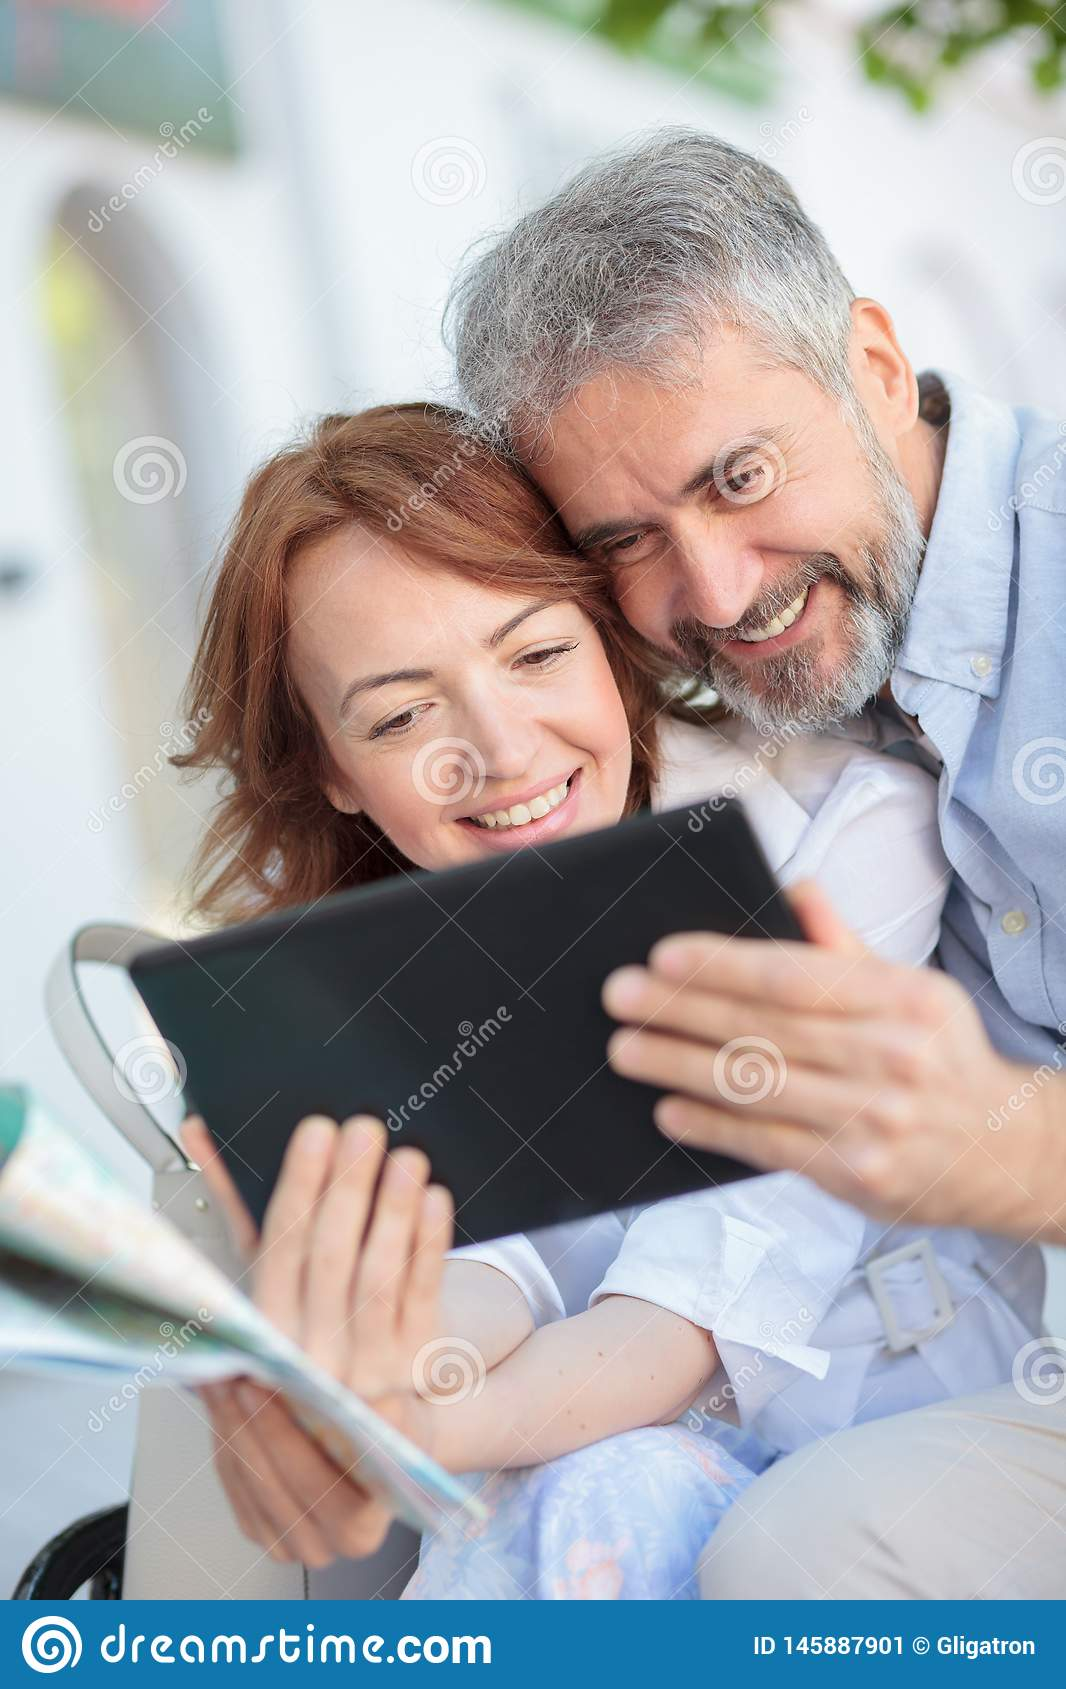 Husband and wife using a tablet while sitting on a bench